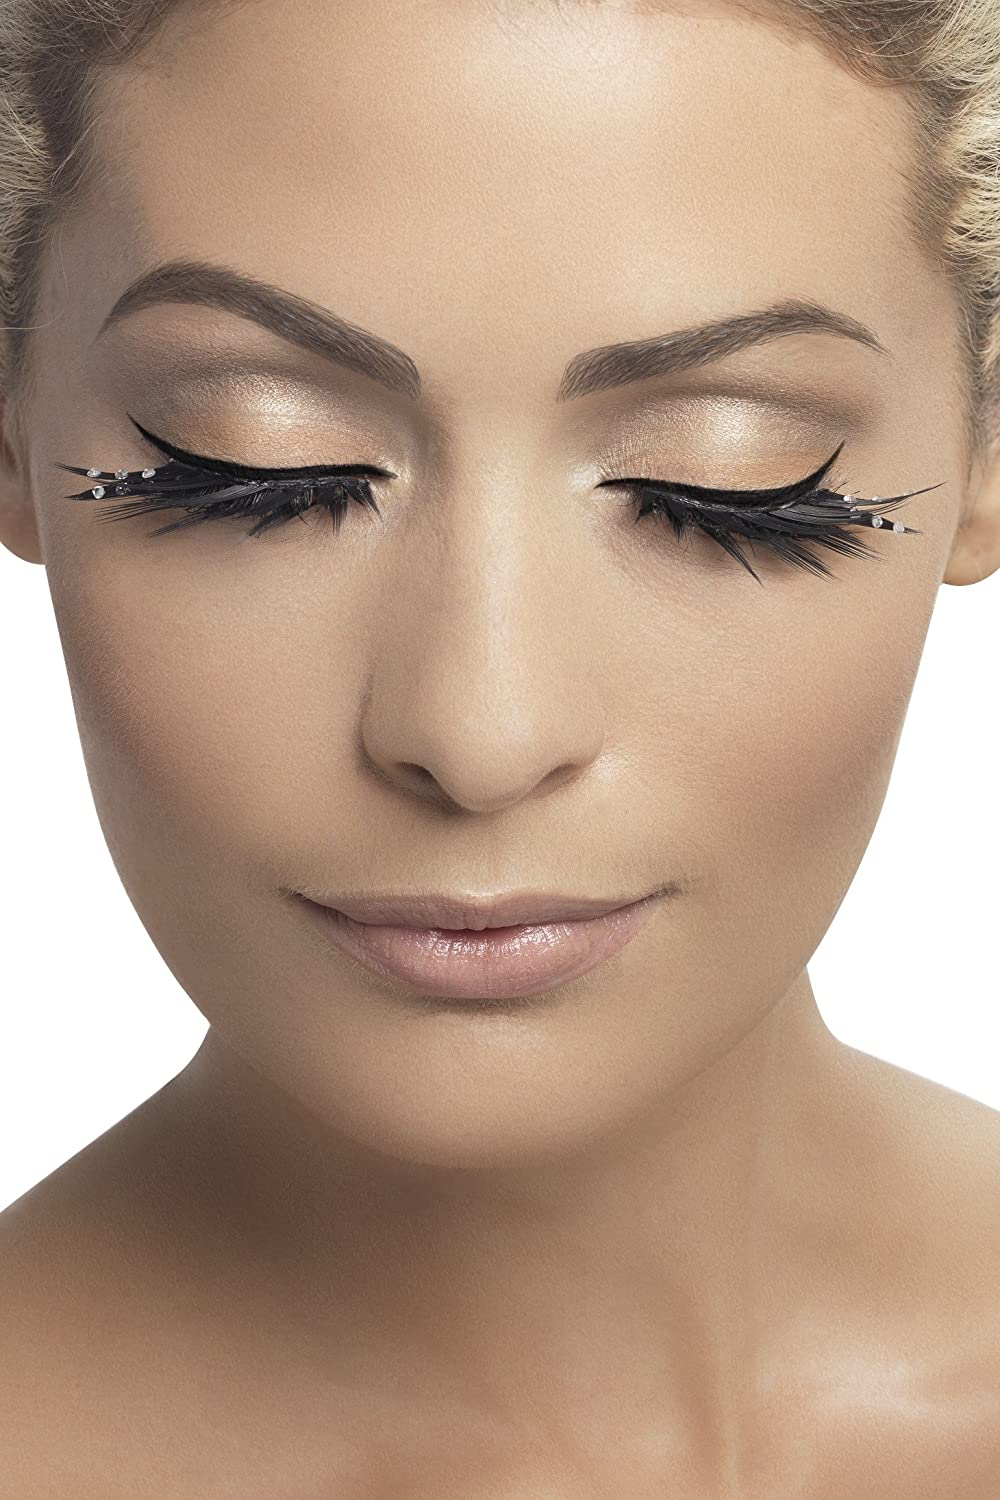 89cf7583763 Amazon.com: Smiffy's Fever Women's Eyelashes Black with Crystals Top and  Bottom Set, One Size: Clothing